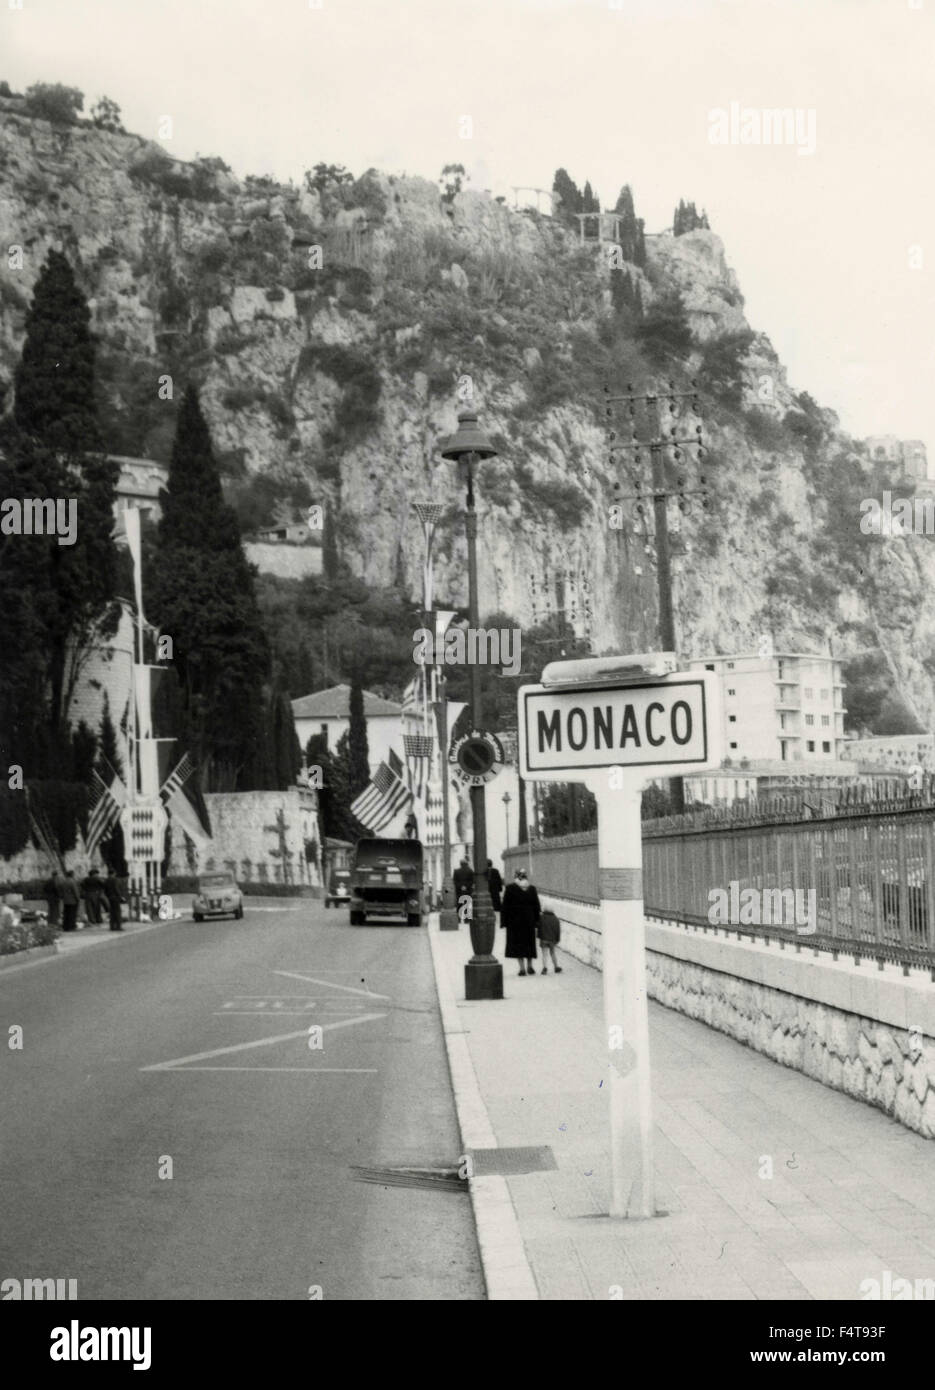 The border between France and Monaco set up with flags for the wedding of the actress Grace Kelly and Prince Rainieri - Stock Image